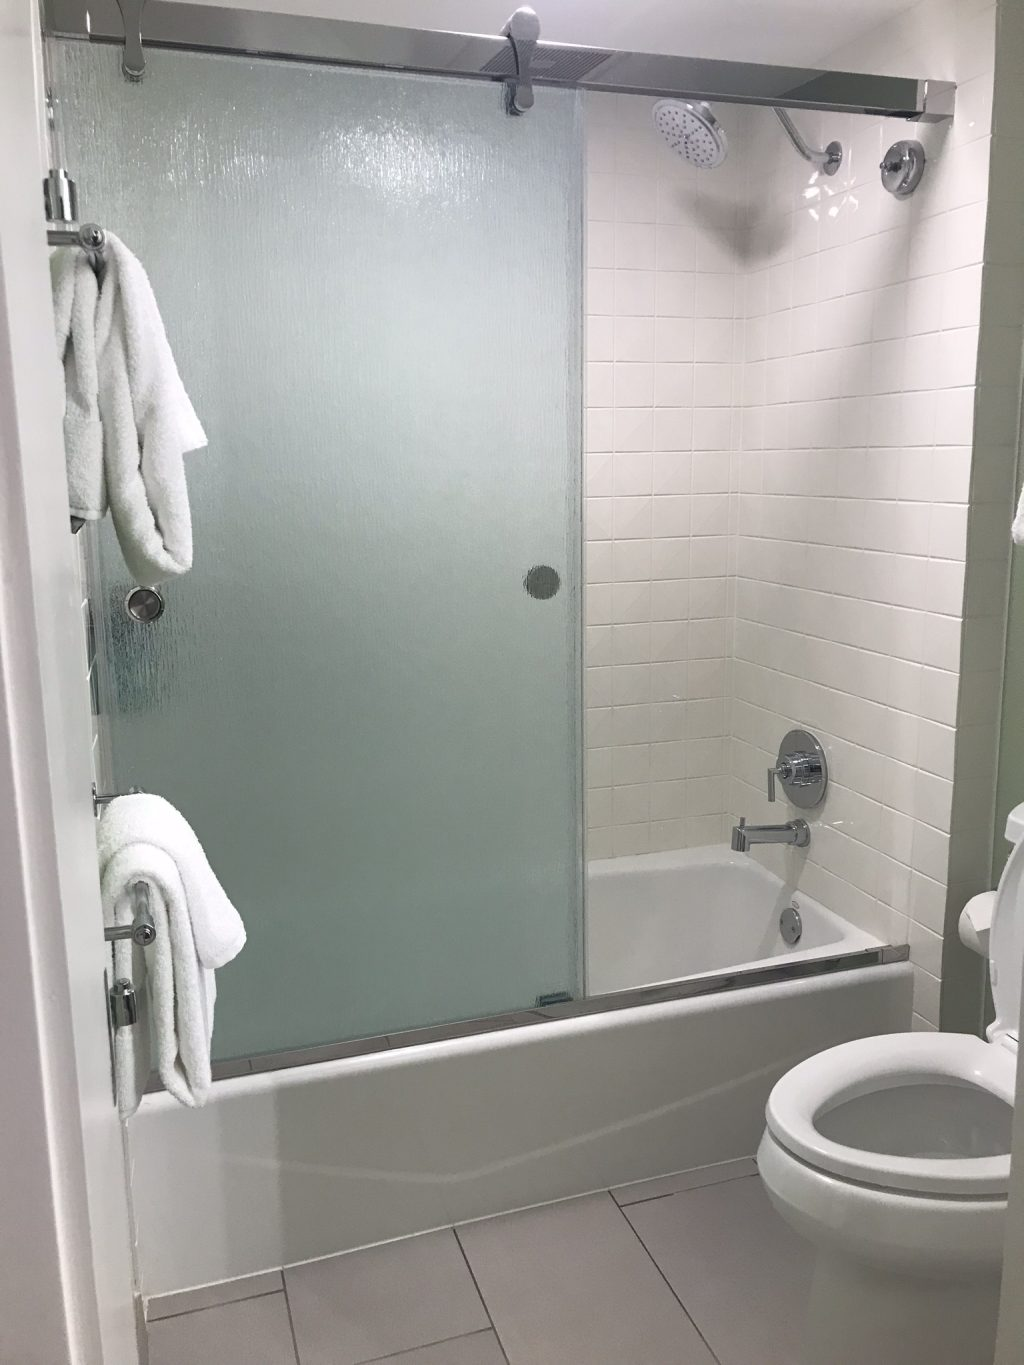 Shower tub and toilet area in an All Star Movies Resort refurbished room